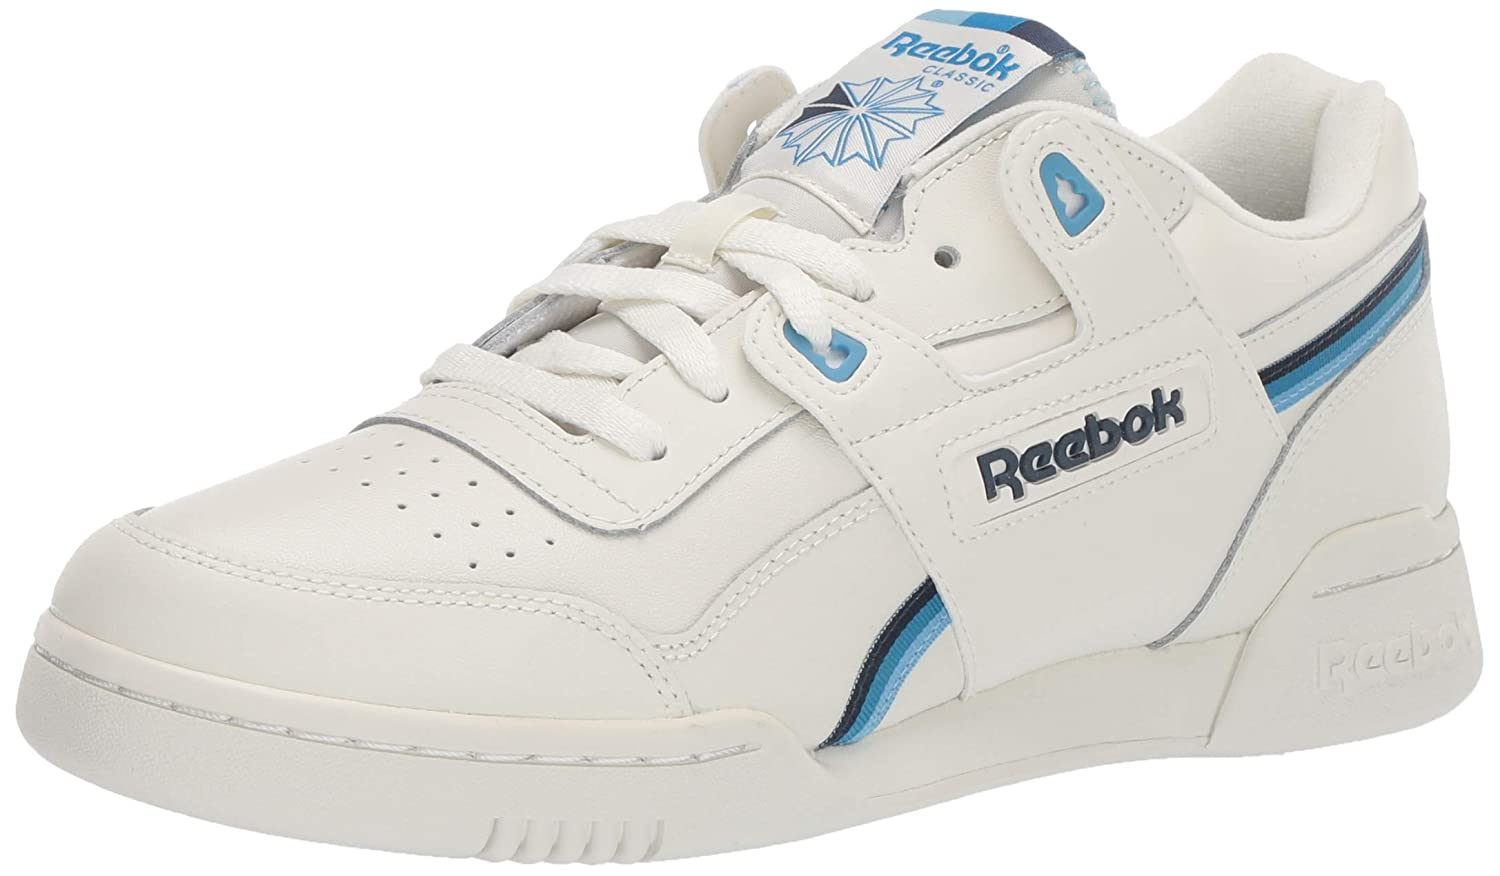 Chalk Collegiate Navy Cyan 44 EU Reebok - Workout Plus Homme